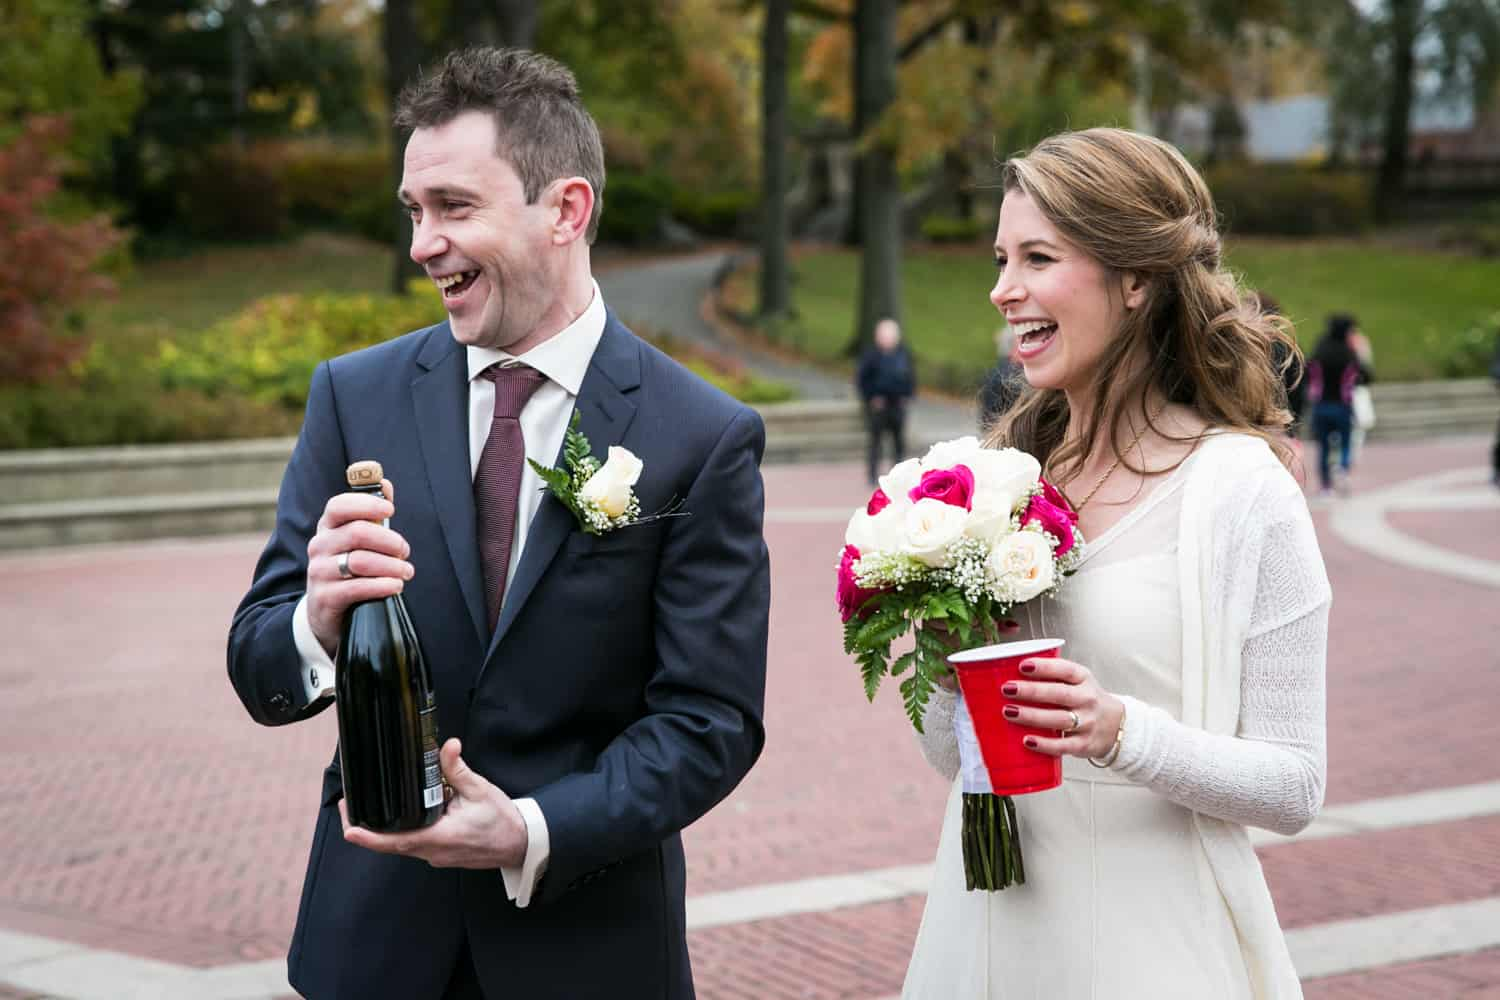 Bride with groom holding champagne bottle at a Bethesda Fountain wedding in Central Park